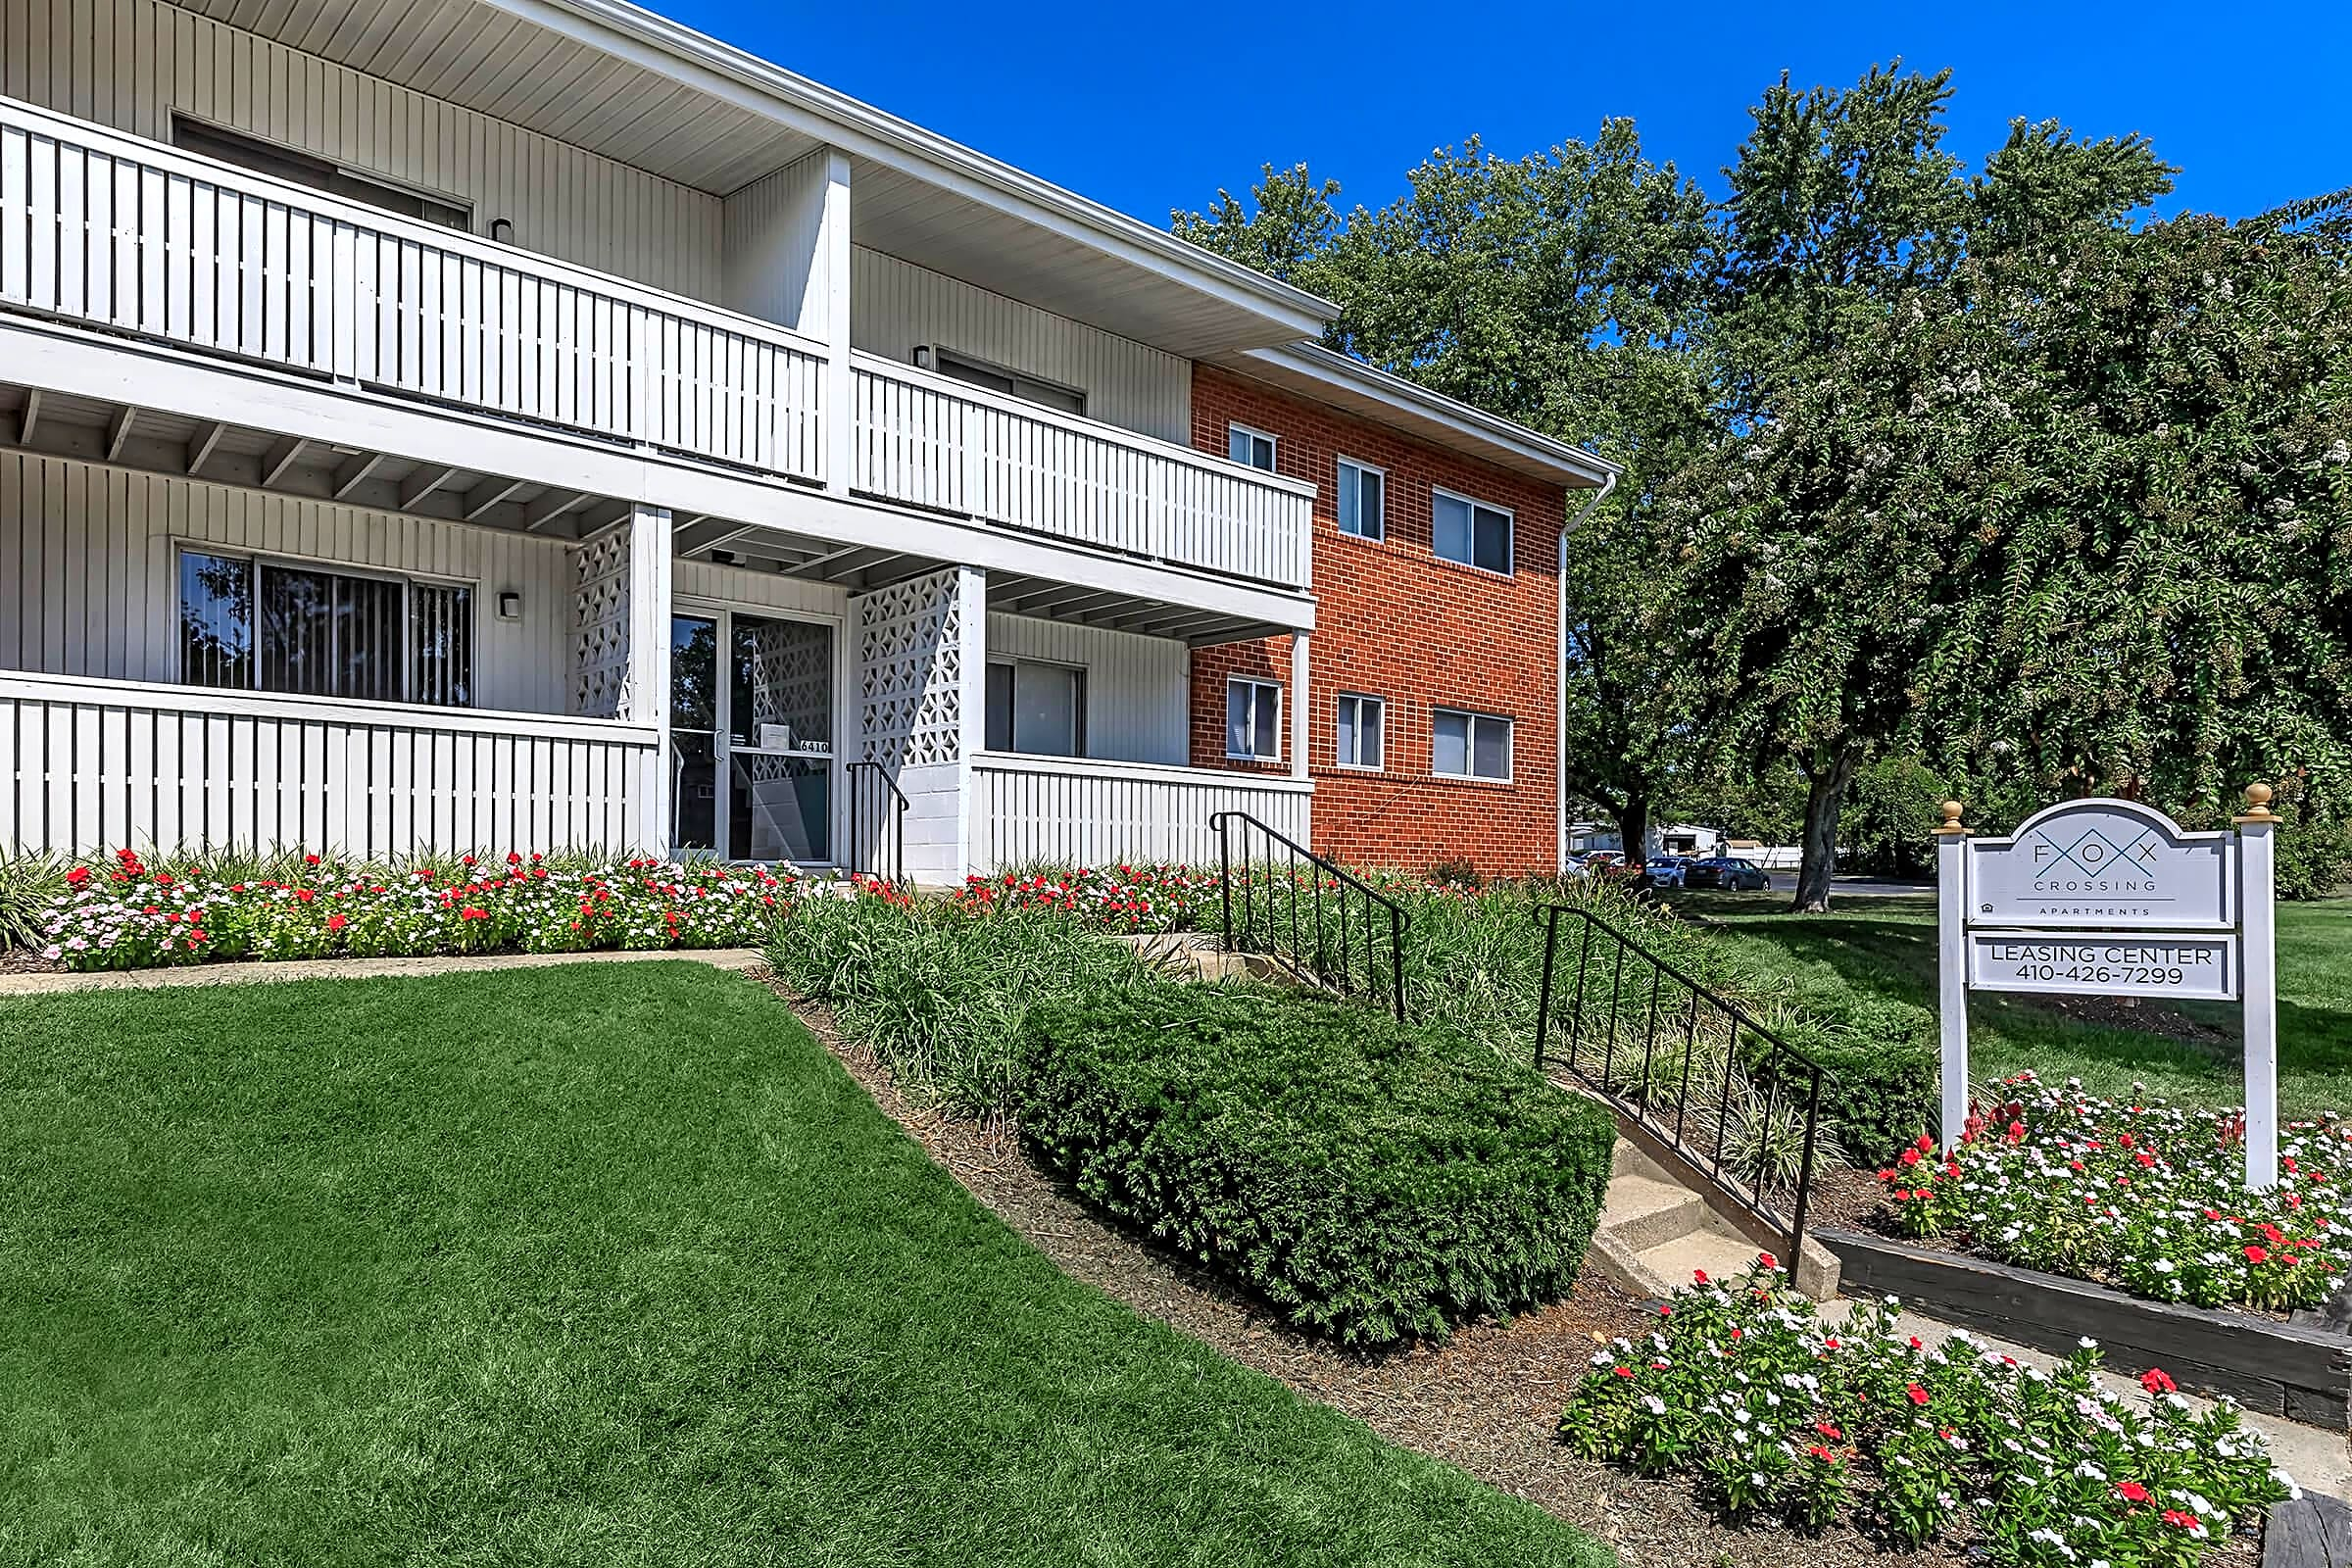 Apartments Near Towson University Fox Crossing for Towson University Students in Towson, MD